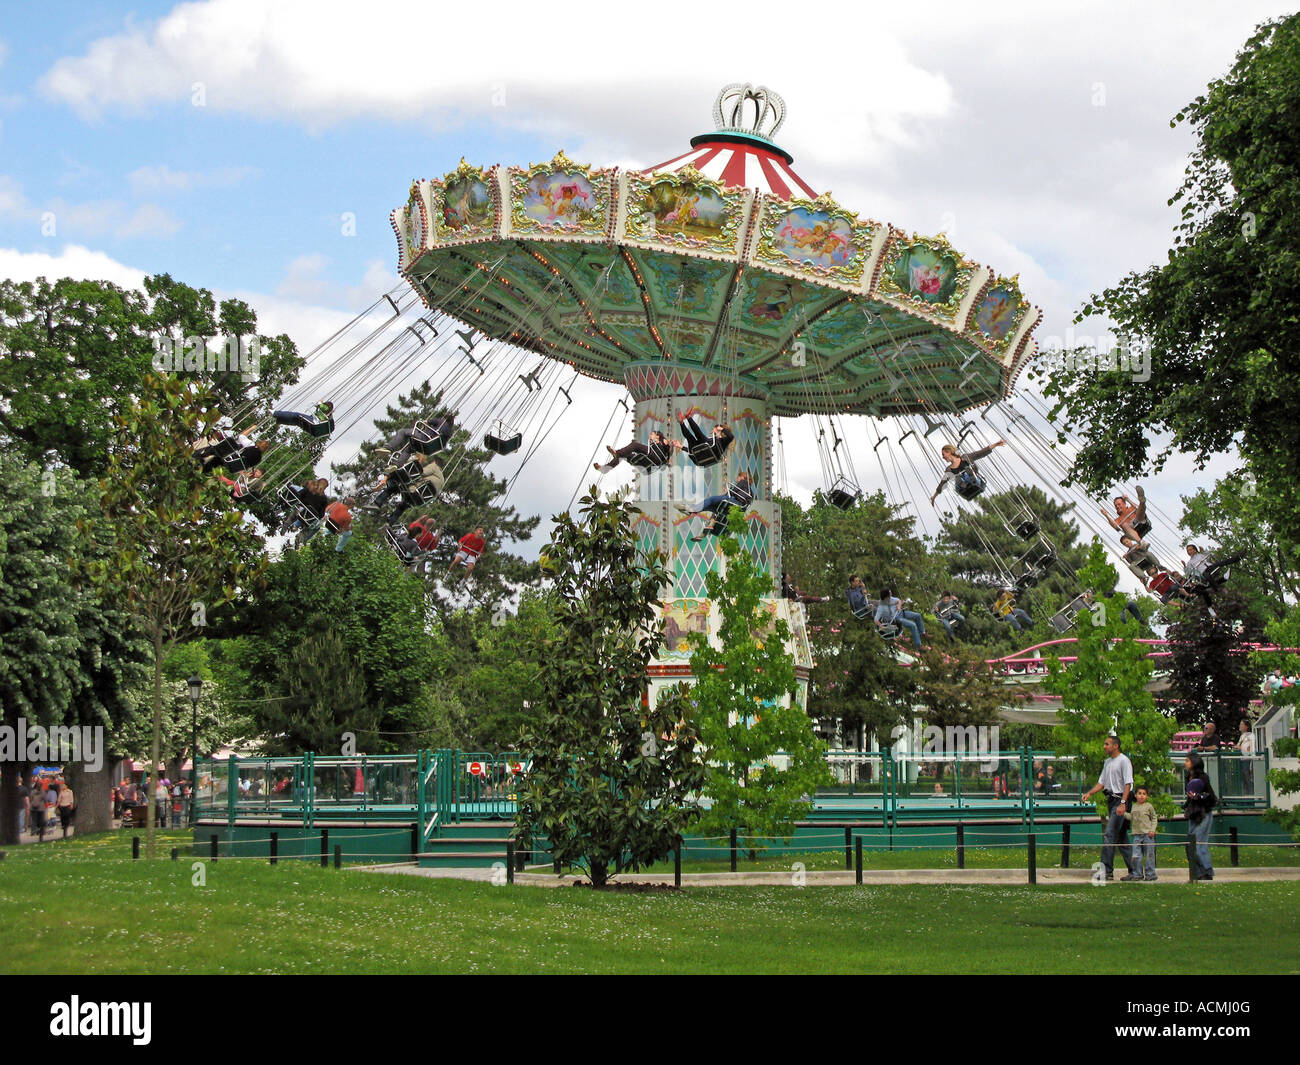 Roundabout in le jardin d acclimatation paris france stock for Jardin d acclimatation